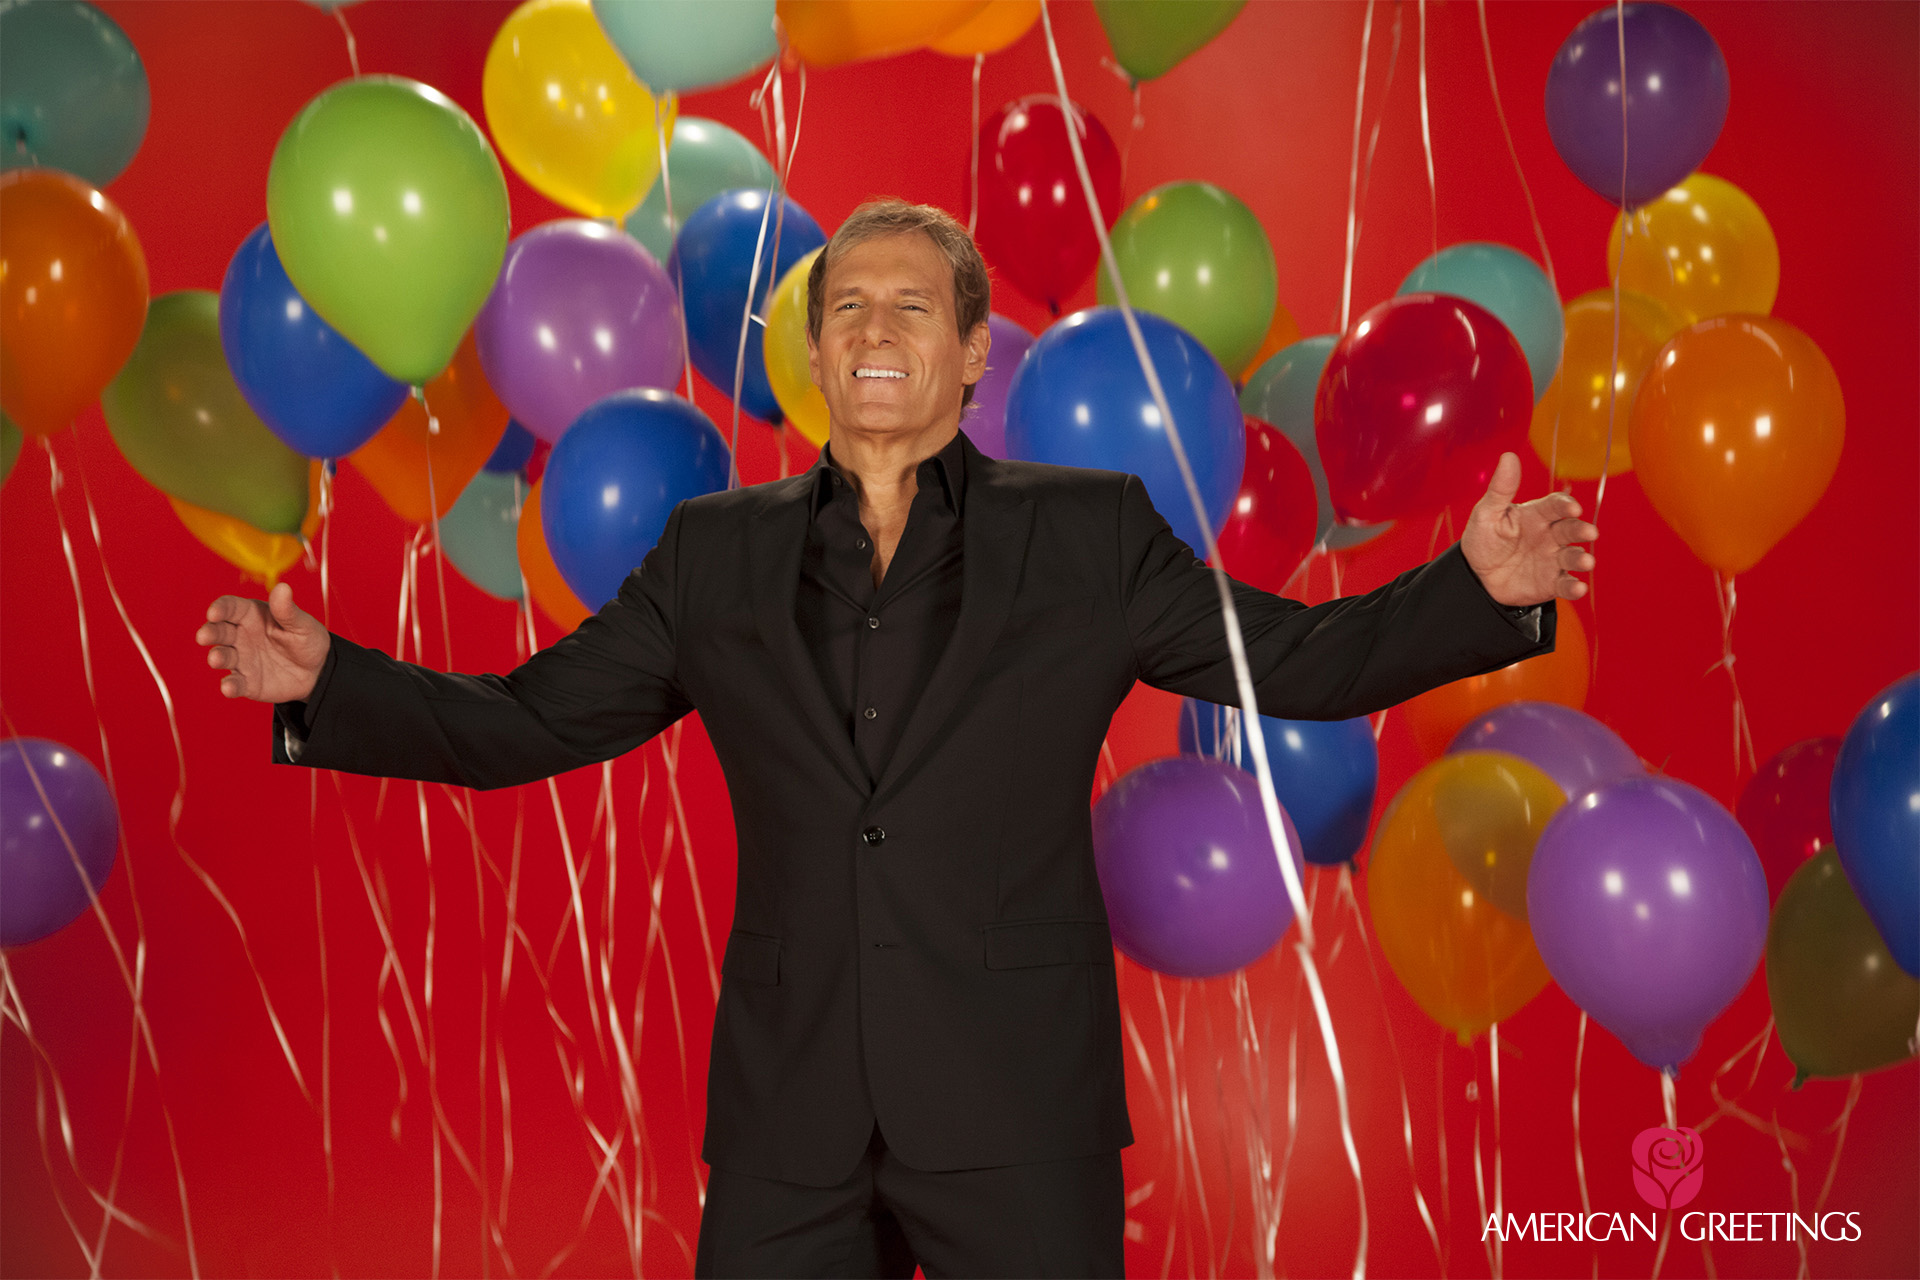 Celebrate birthdays in an epic way with new michael bolton video celebrate birthdays in an epic way kristyandbryce Gallery